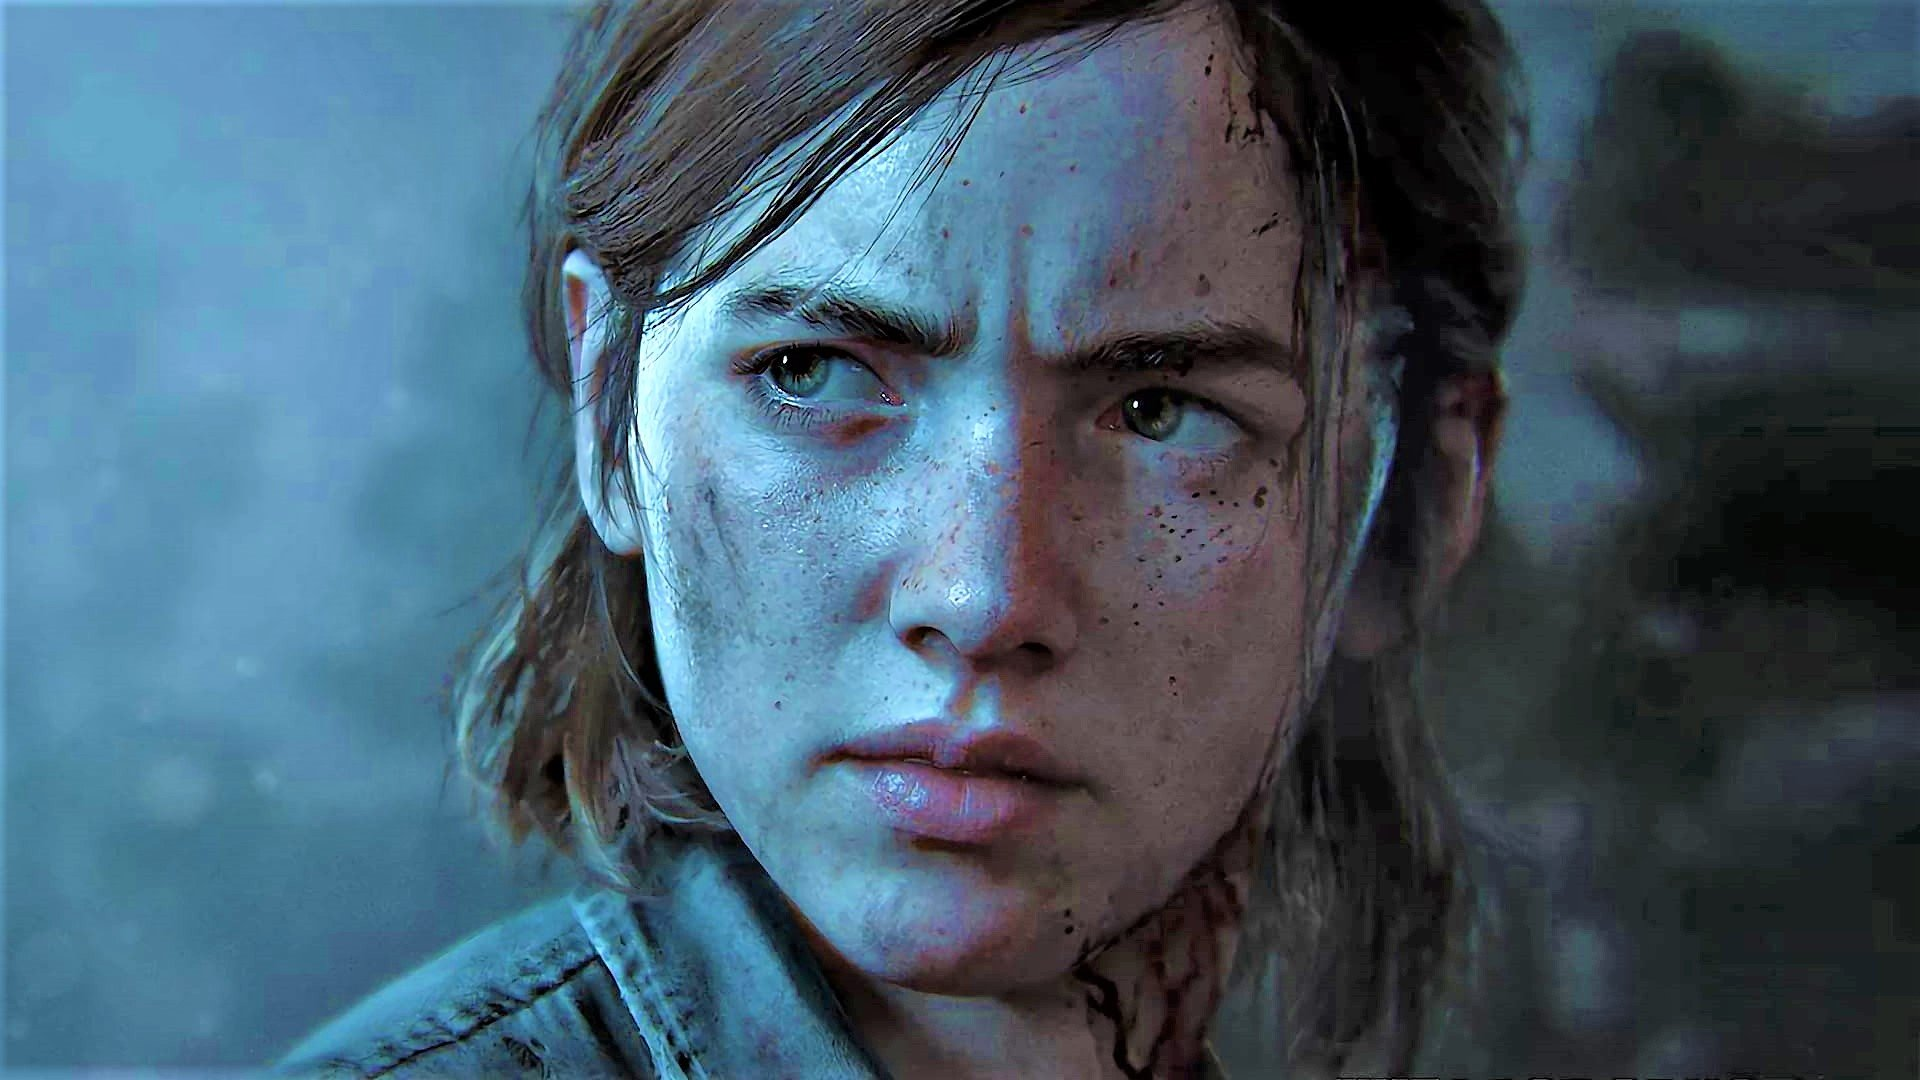 The Last of Us 2 Release Date Delay Sony to Postpone the Naughty Dog Game over Covid-19